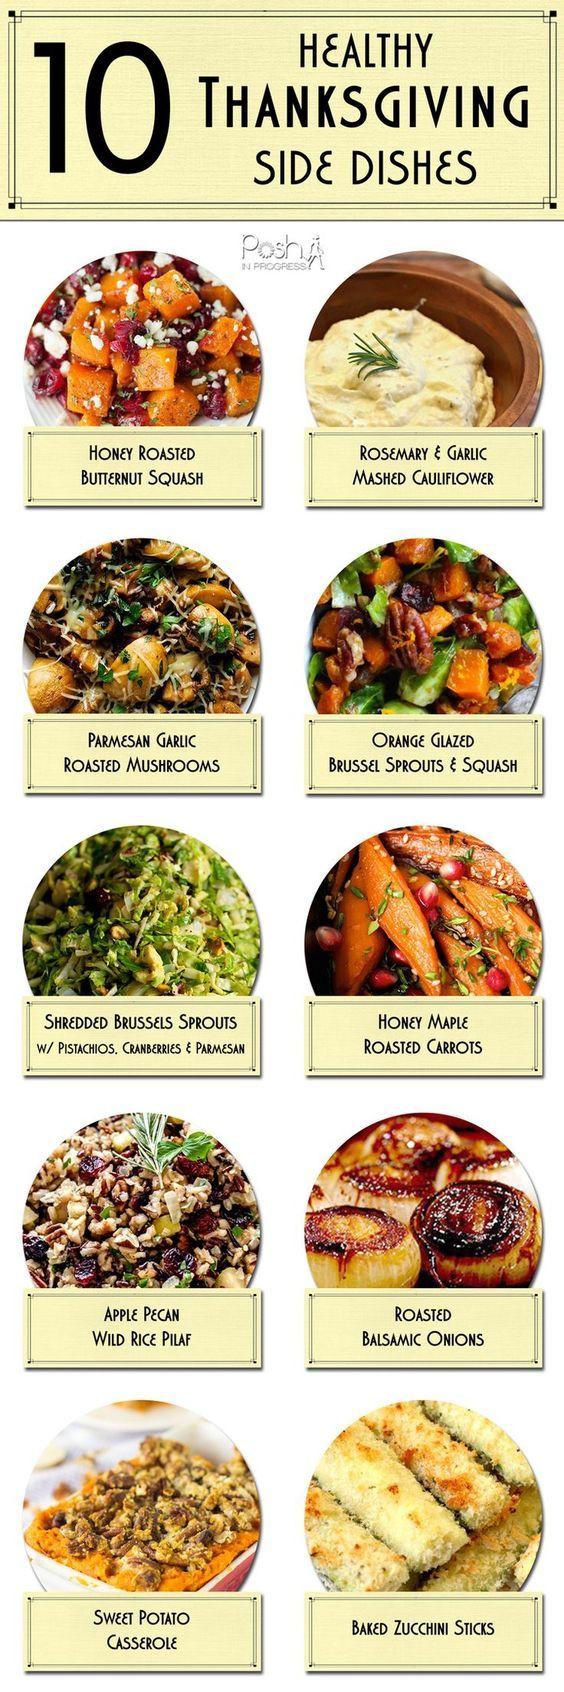 Healthy Thanksgiving Side Dish Recipes  TASTY TUESDAY 10 Healthy Thanksgiving Side Dishes